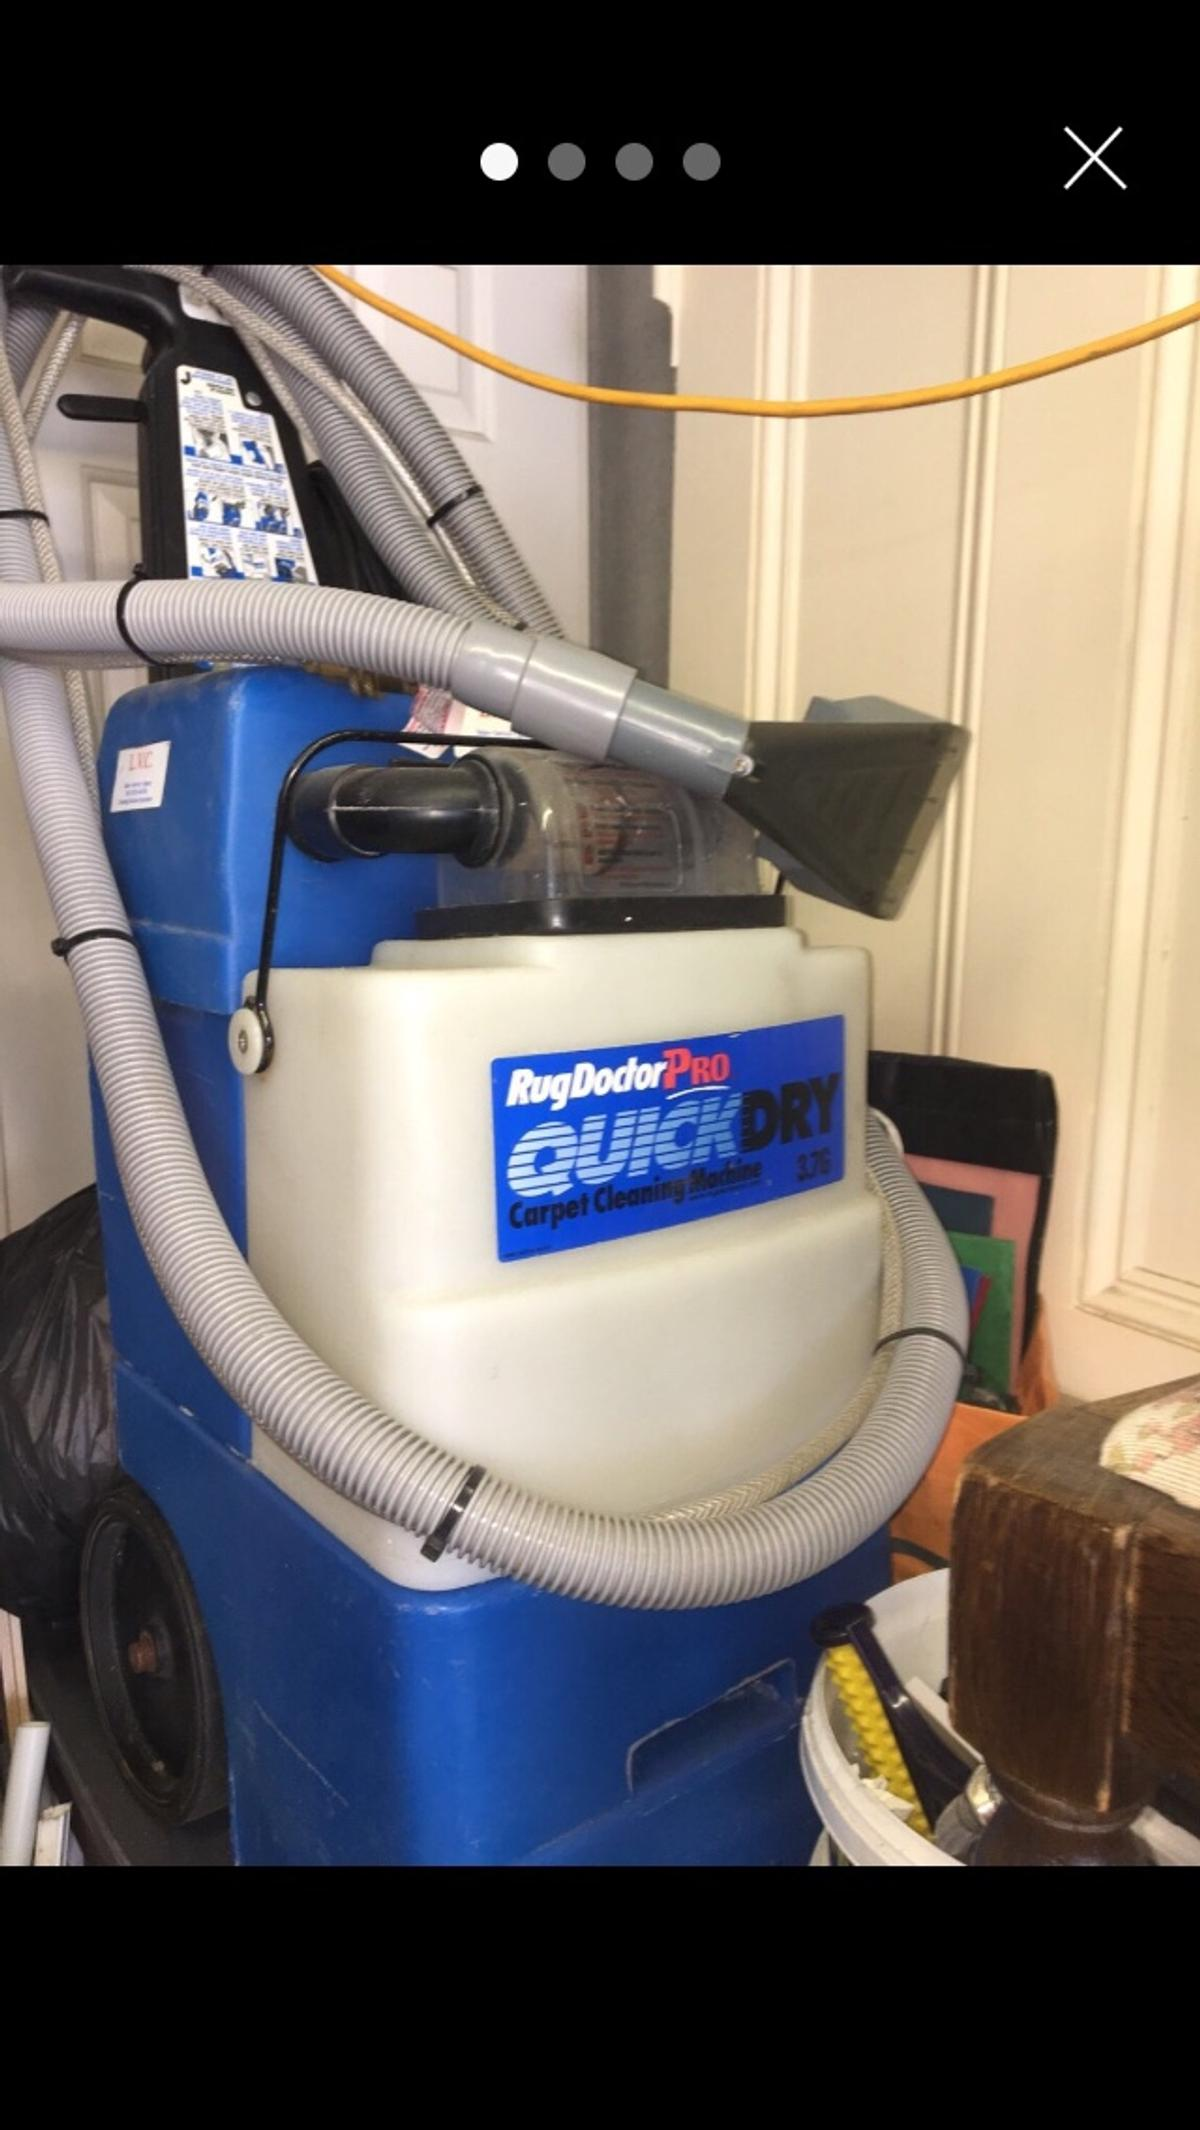 Rug doctor pro quick Dry in IG3